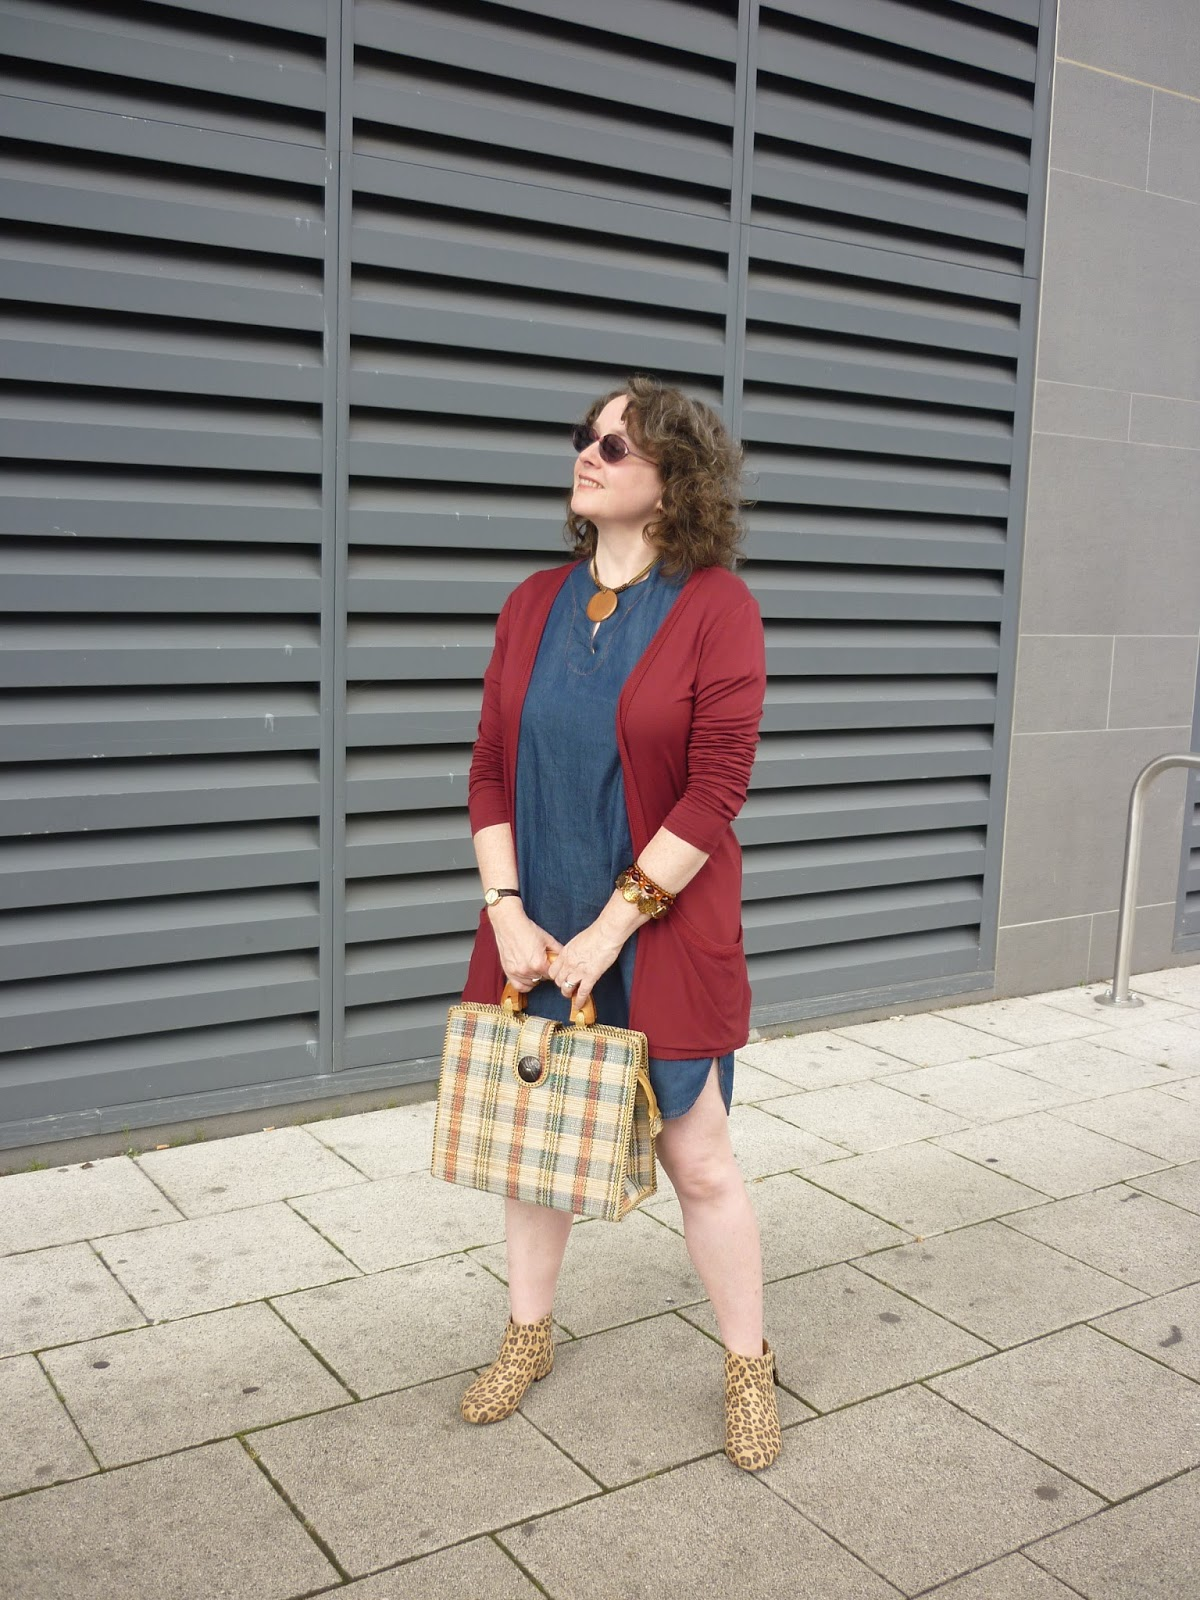 Leopard Print Chelsea Boots, Denim Shift Dress & Red Boyfriend Cardigan | Petite Silver Vixen